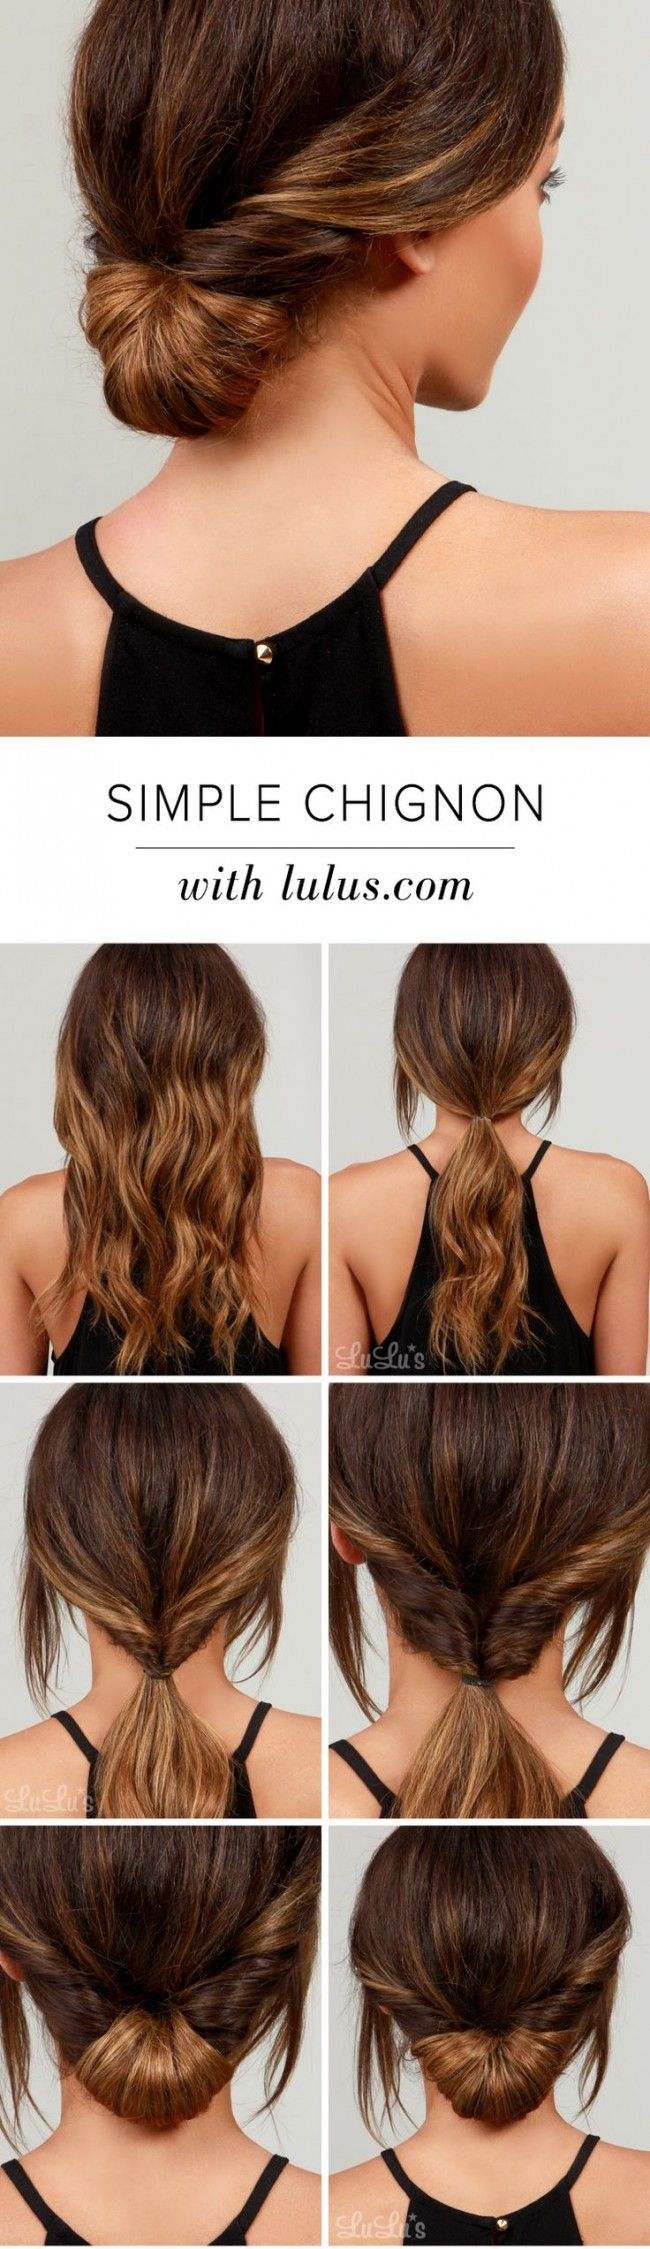 LuLu*s How-To: Simple Chignon Hair Tutorial #lulus